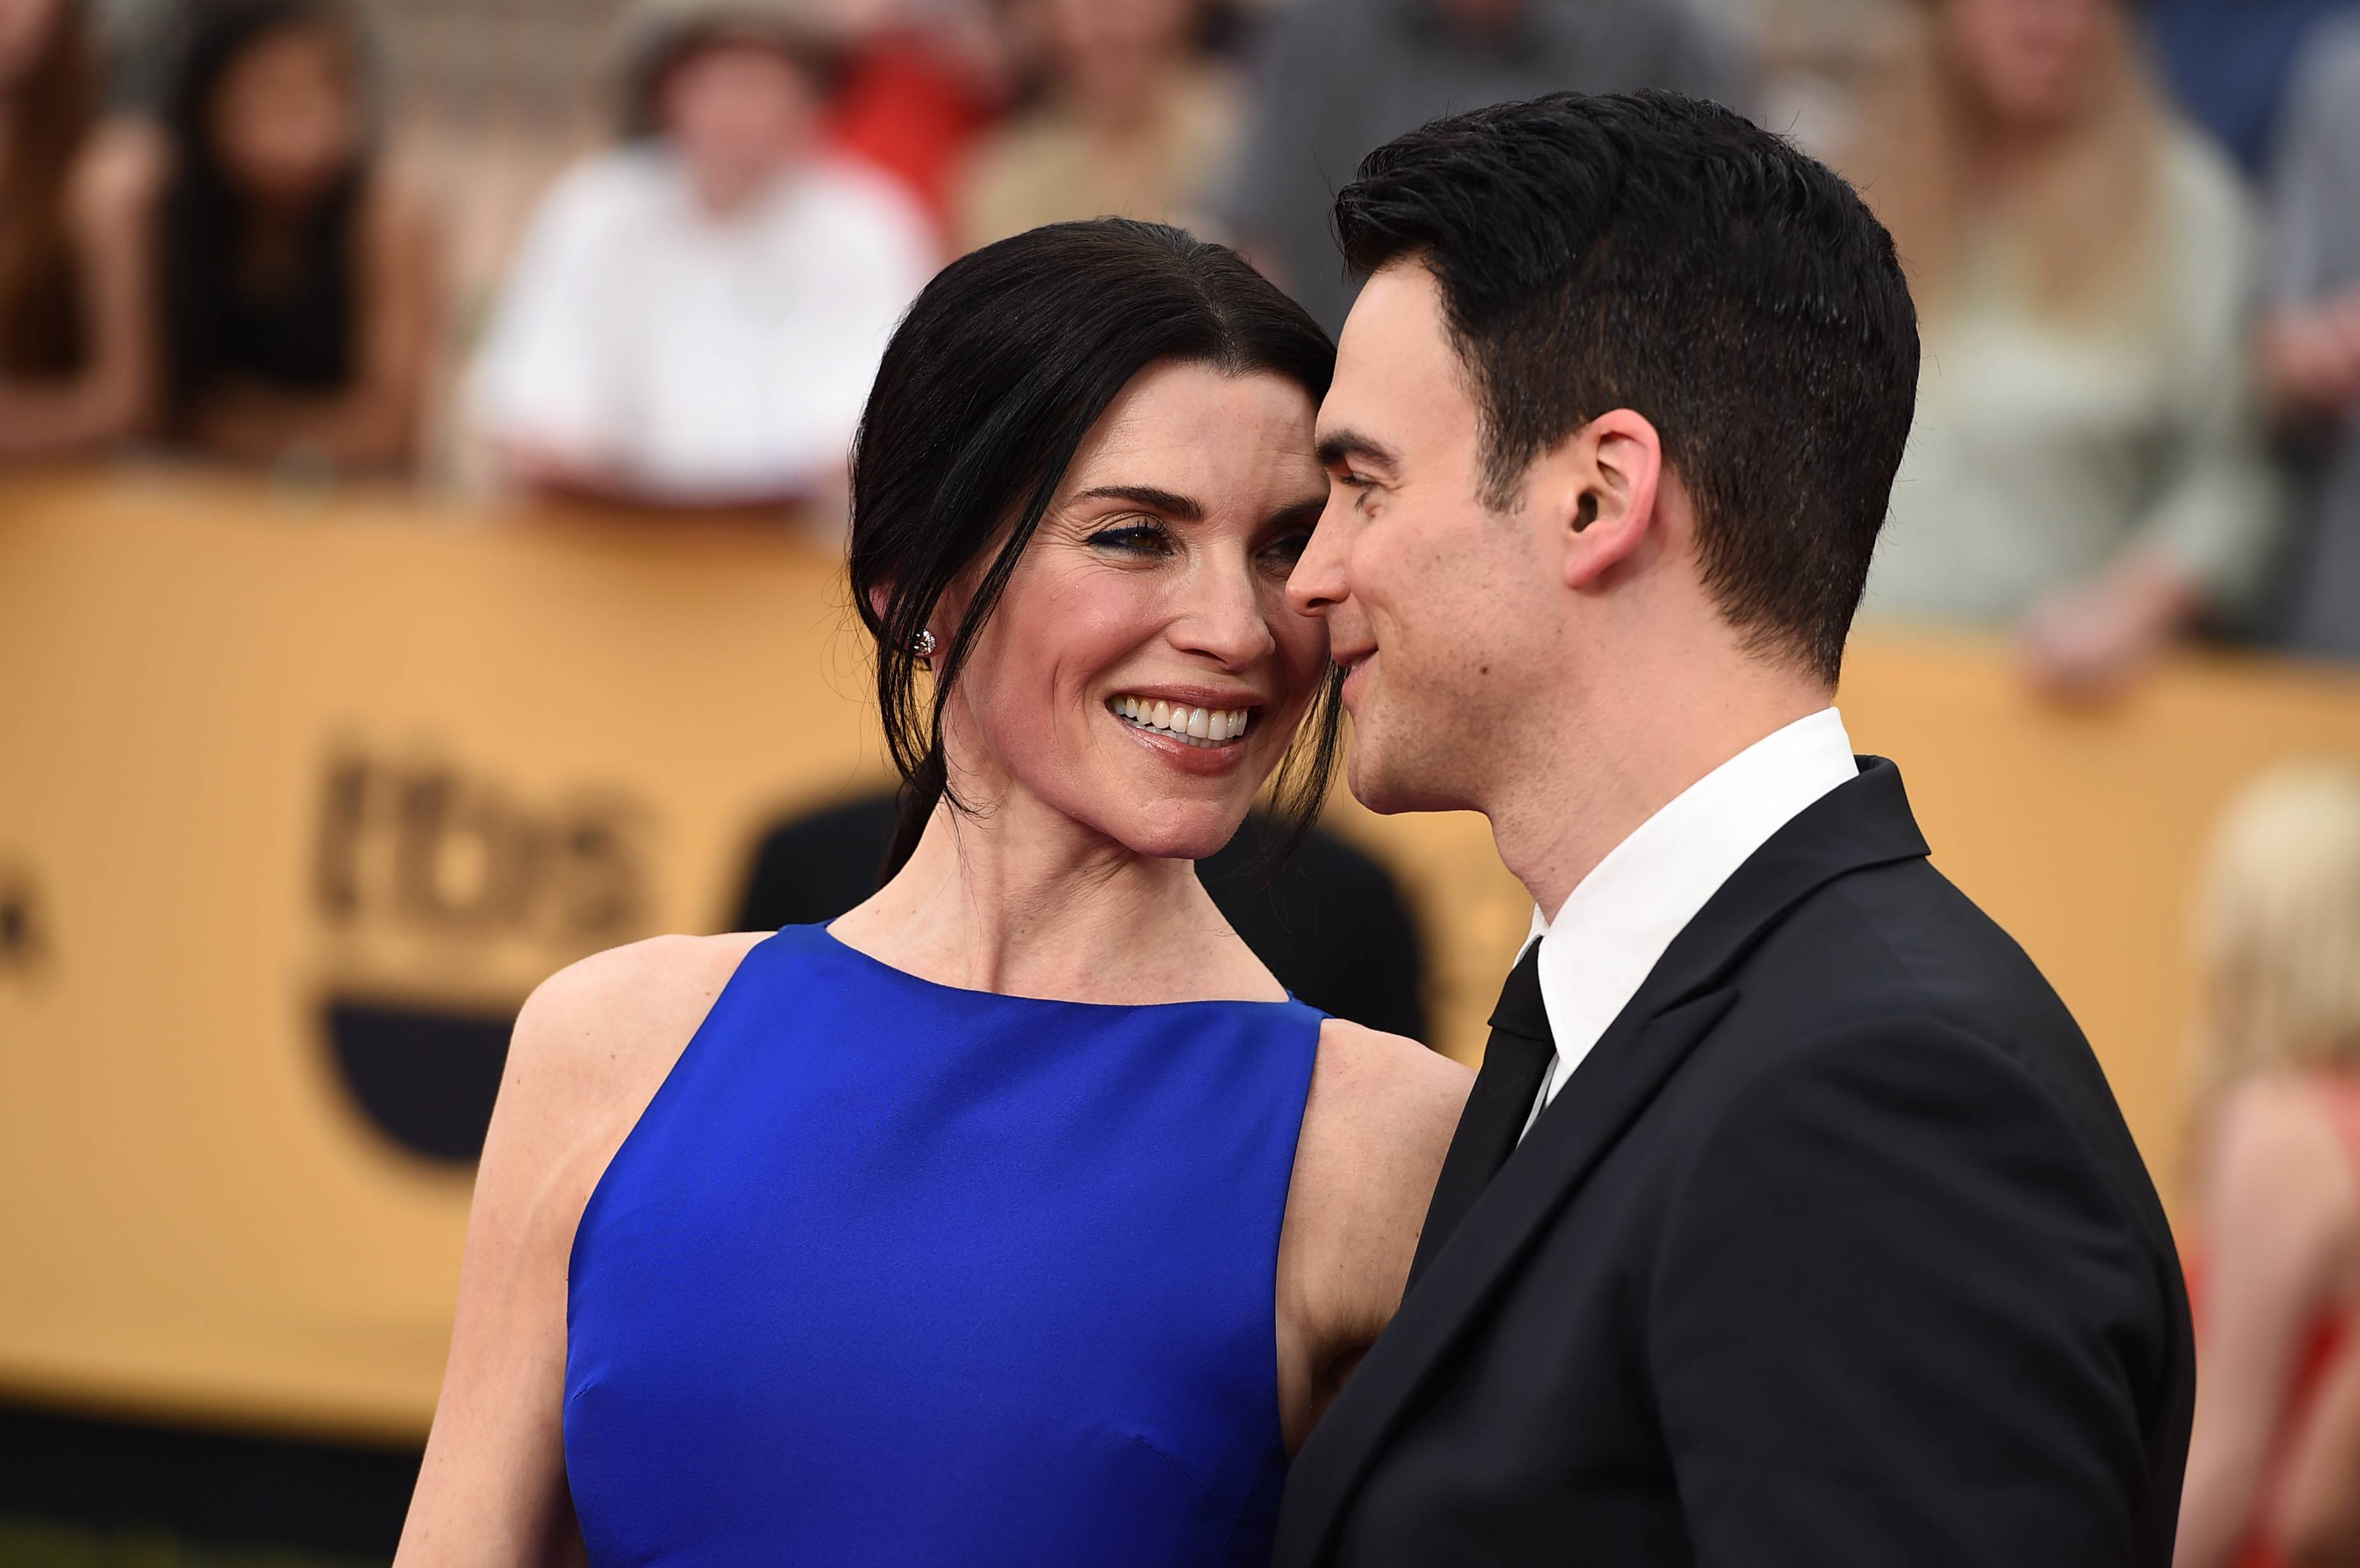 """The Good Wife"" star Julianna Margulies and her husband, Keith Lieberthal, arrive Sunday at the 21st annual Screen Actors Guild Awards at the Shrine Auditorium."